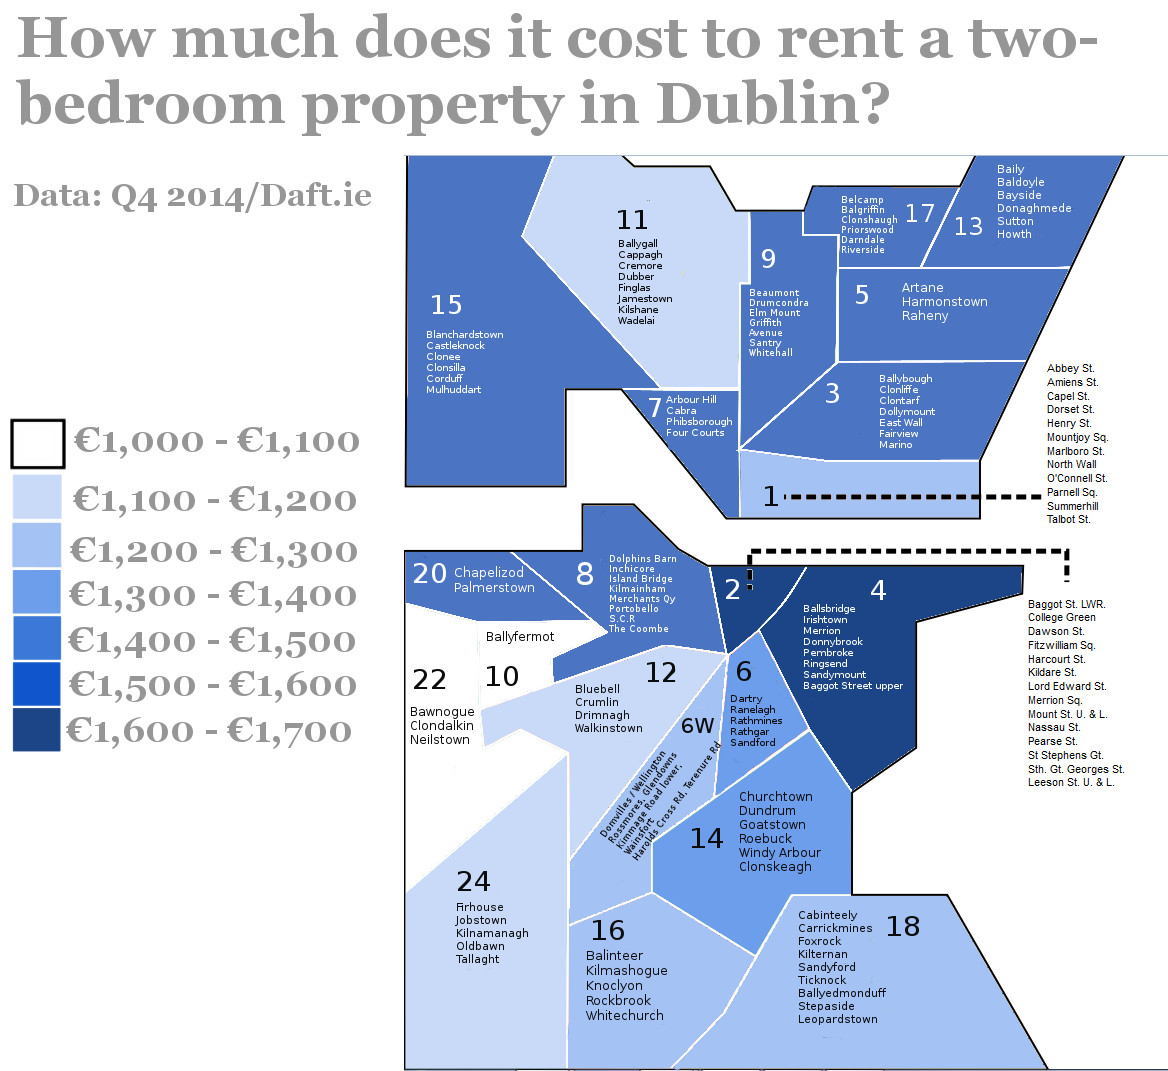 Cheap Place To Rent: Here Is What It Costs To Rent A Property In Ireland